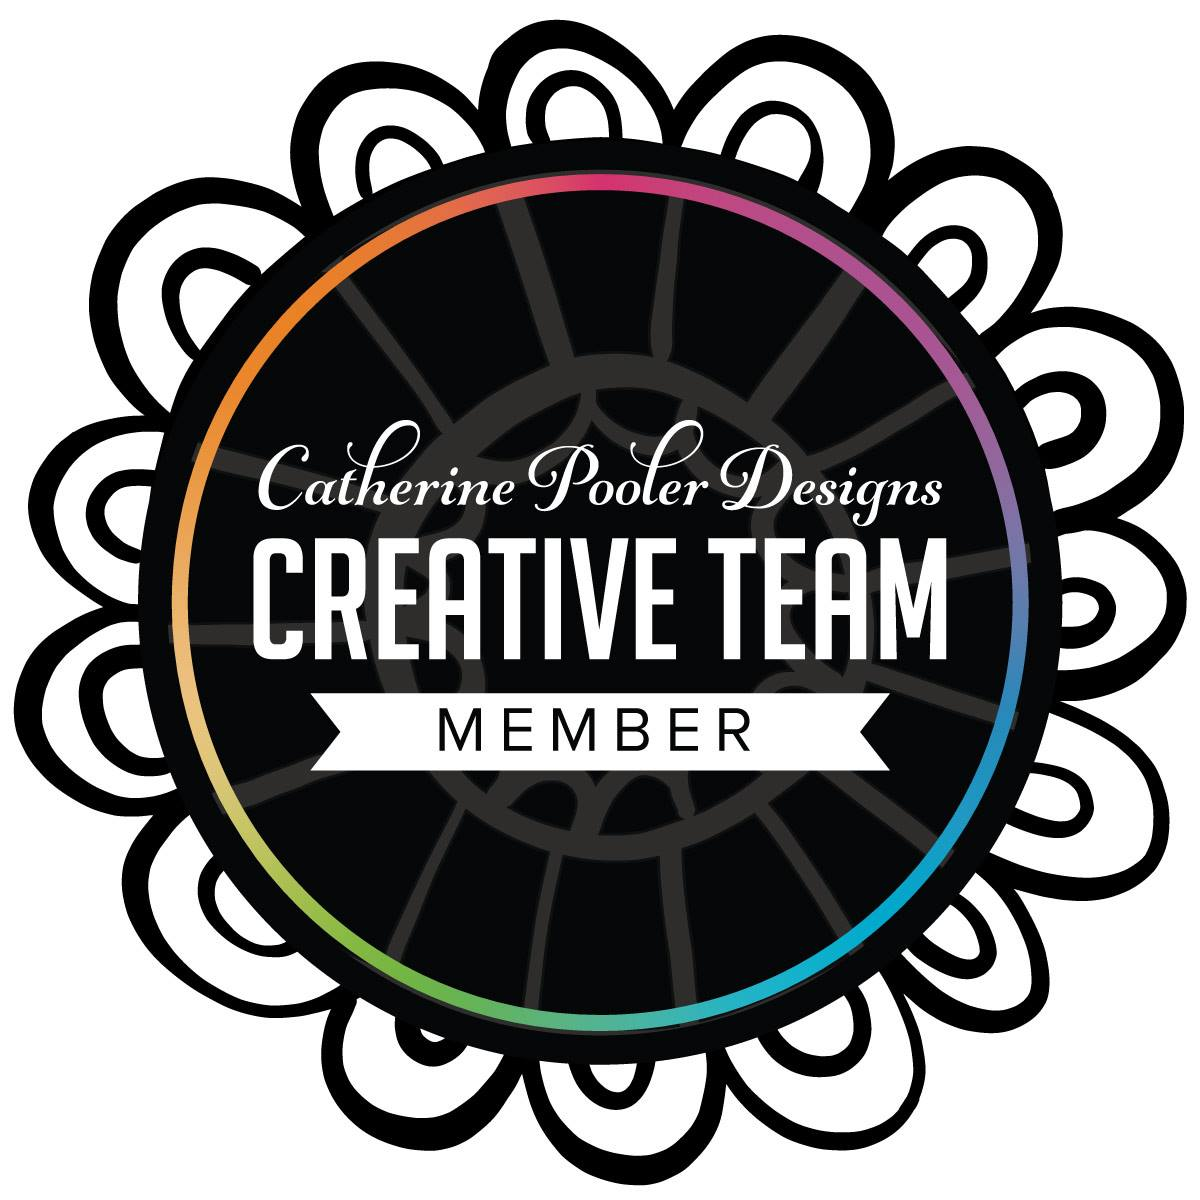 cp creative team member badge.jpg